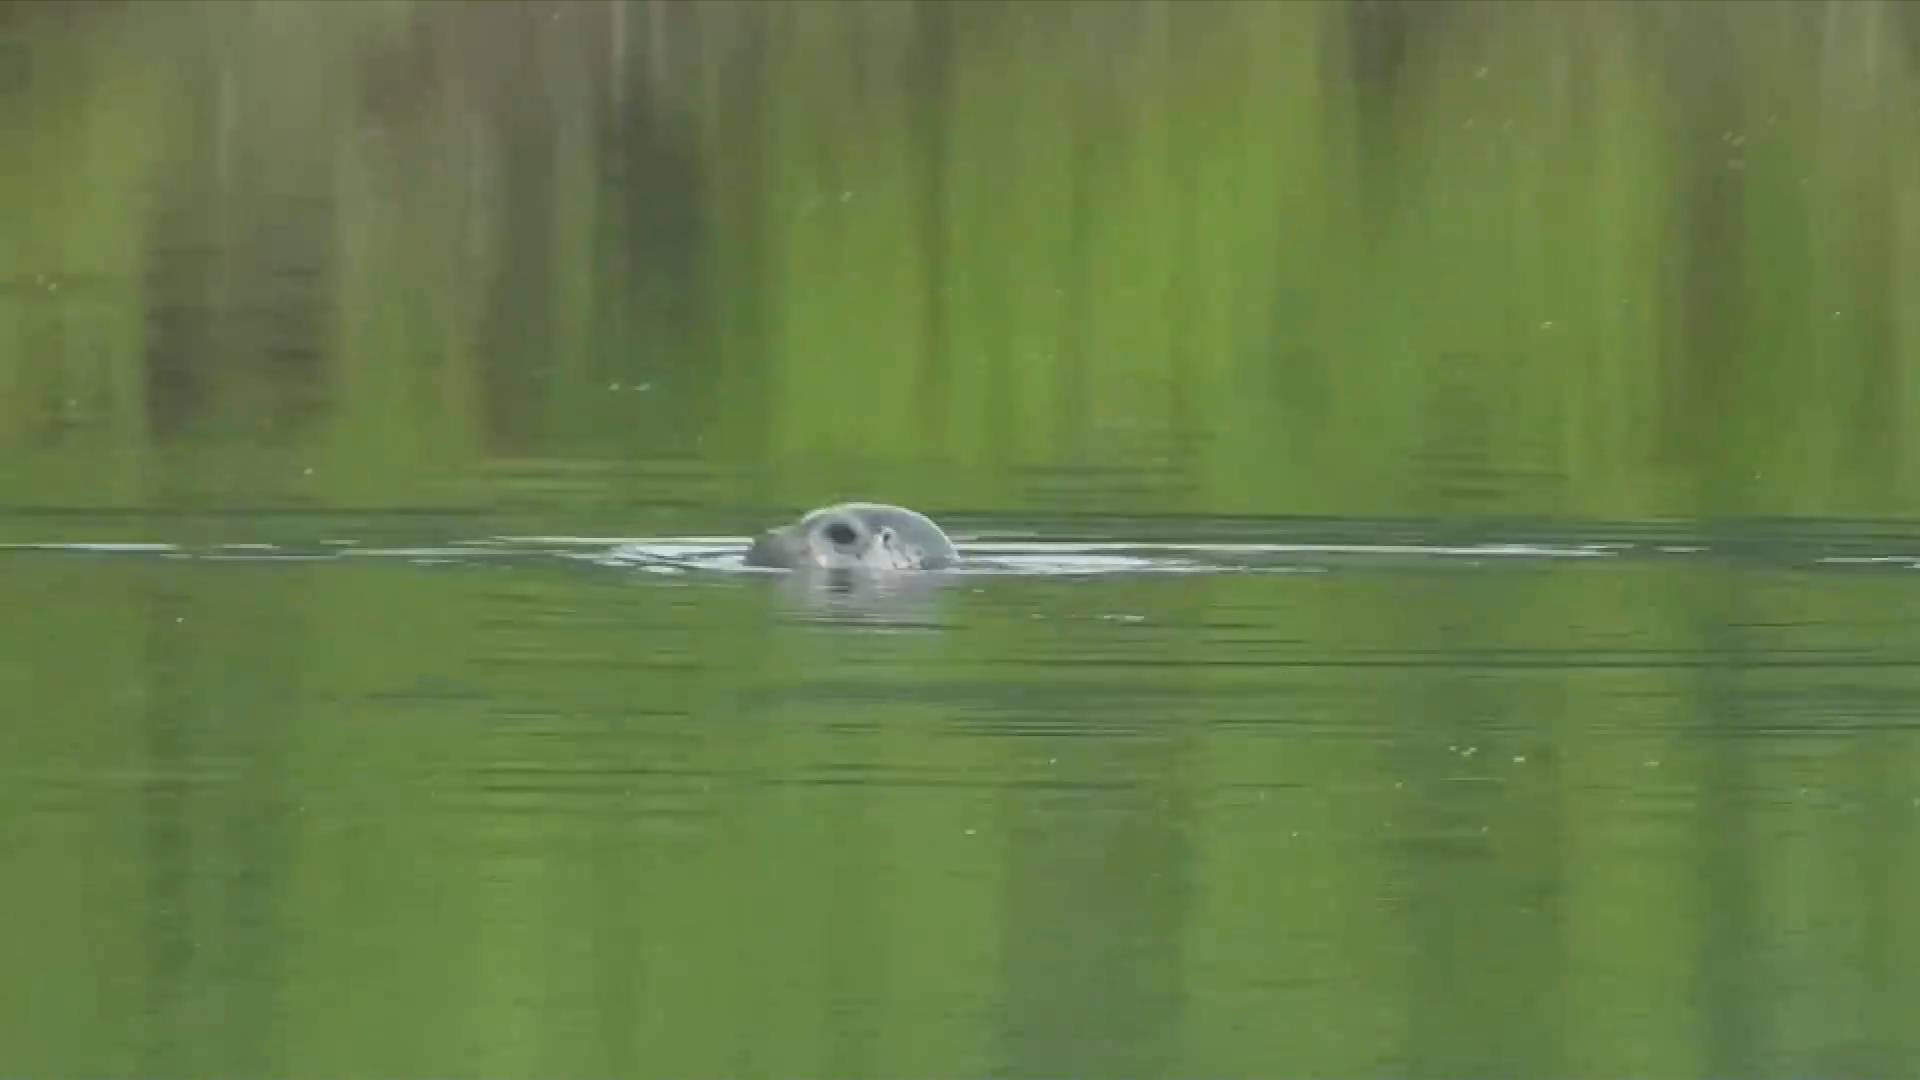 GLOBALink | Spotted seals discovered in inland rivers in Shenyang, China